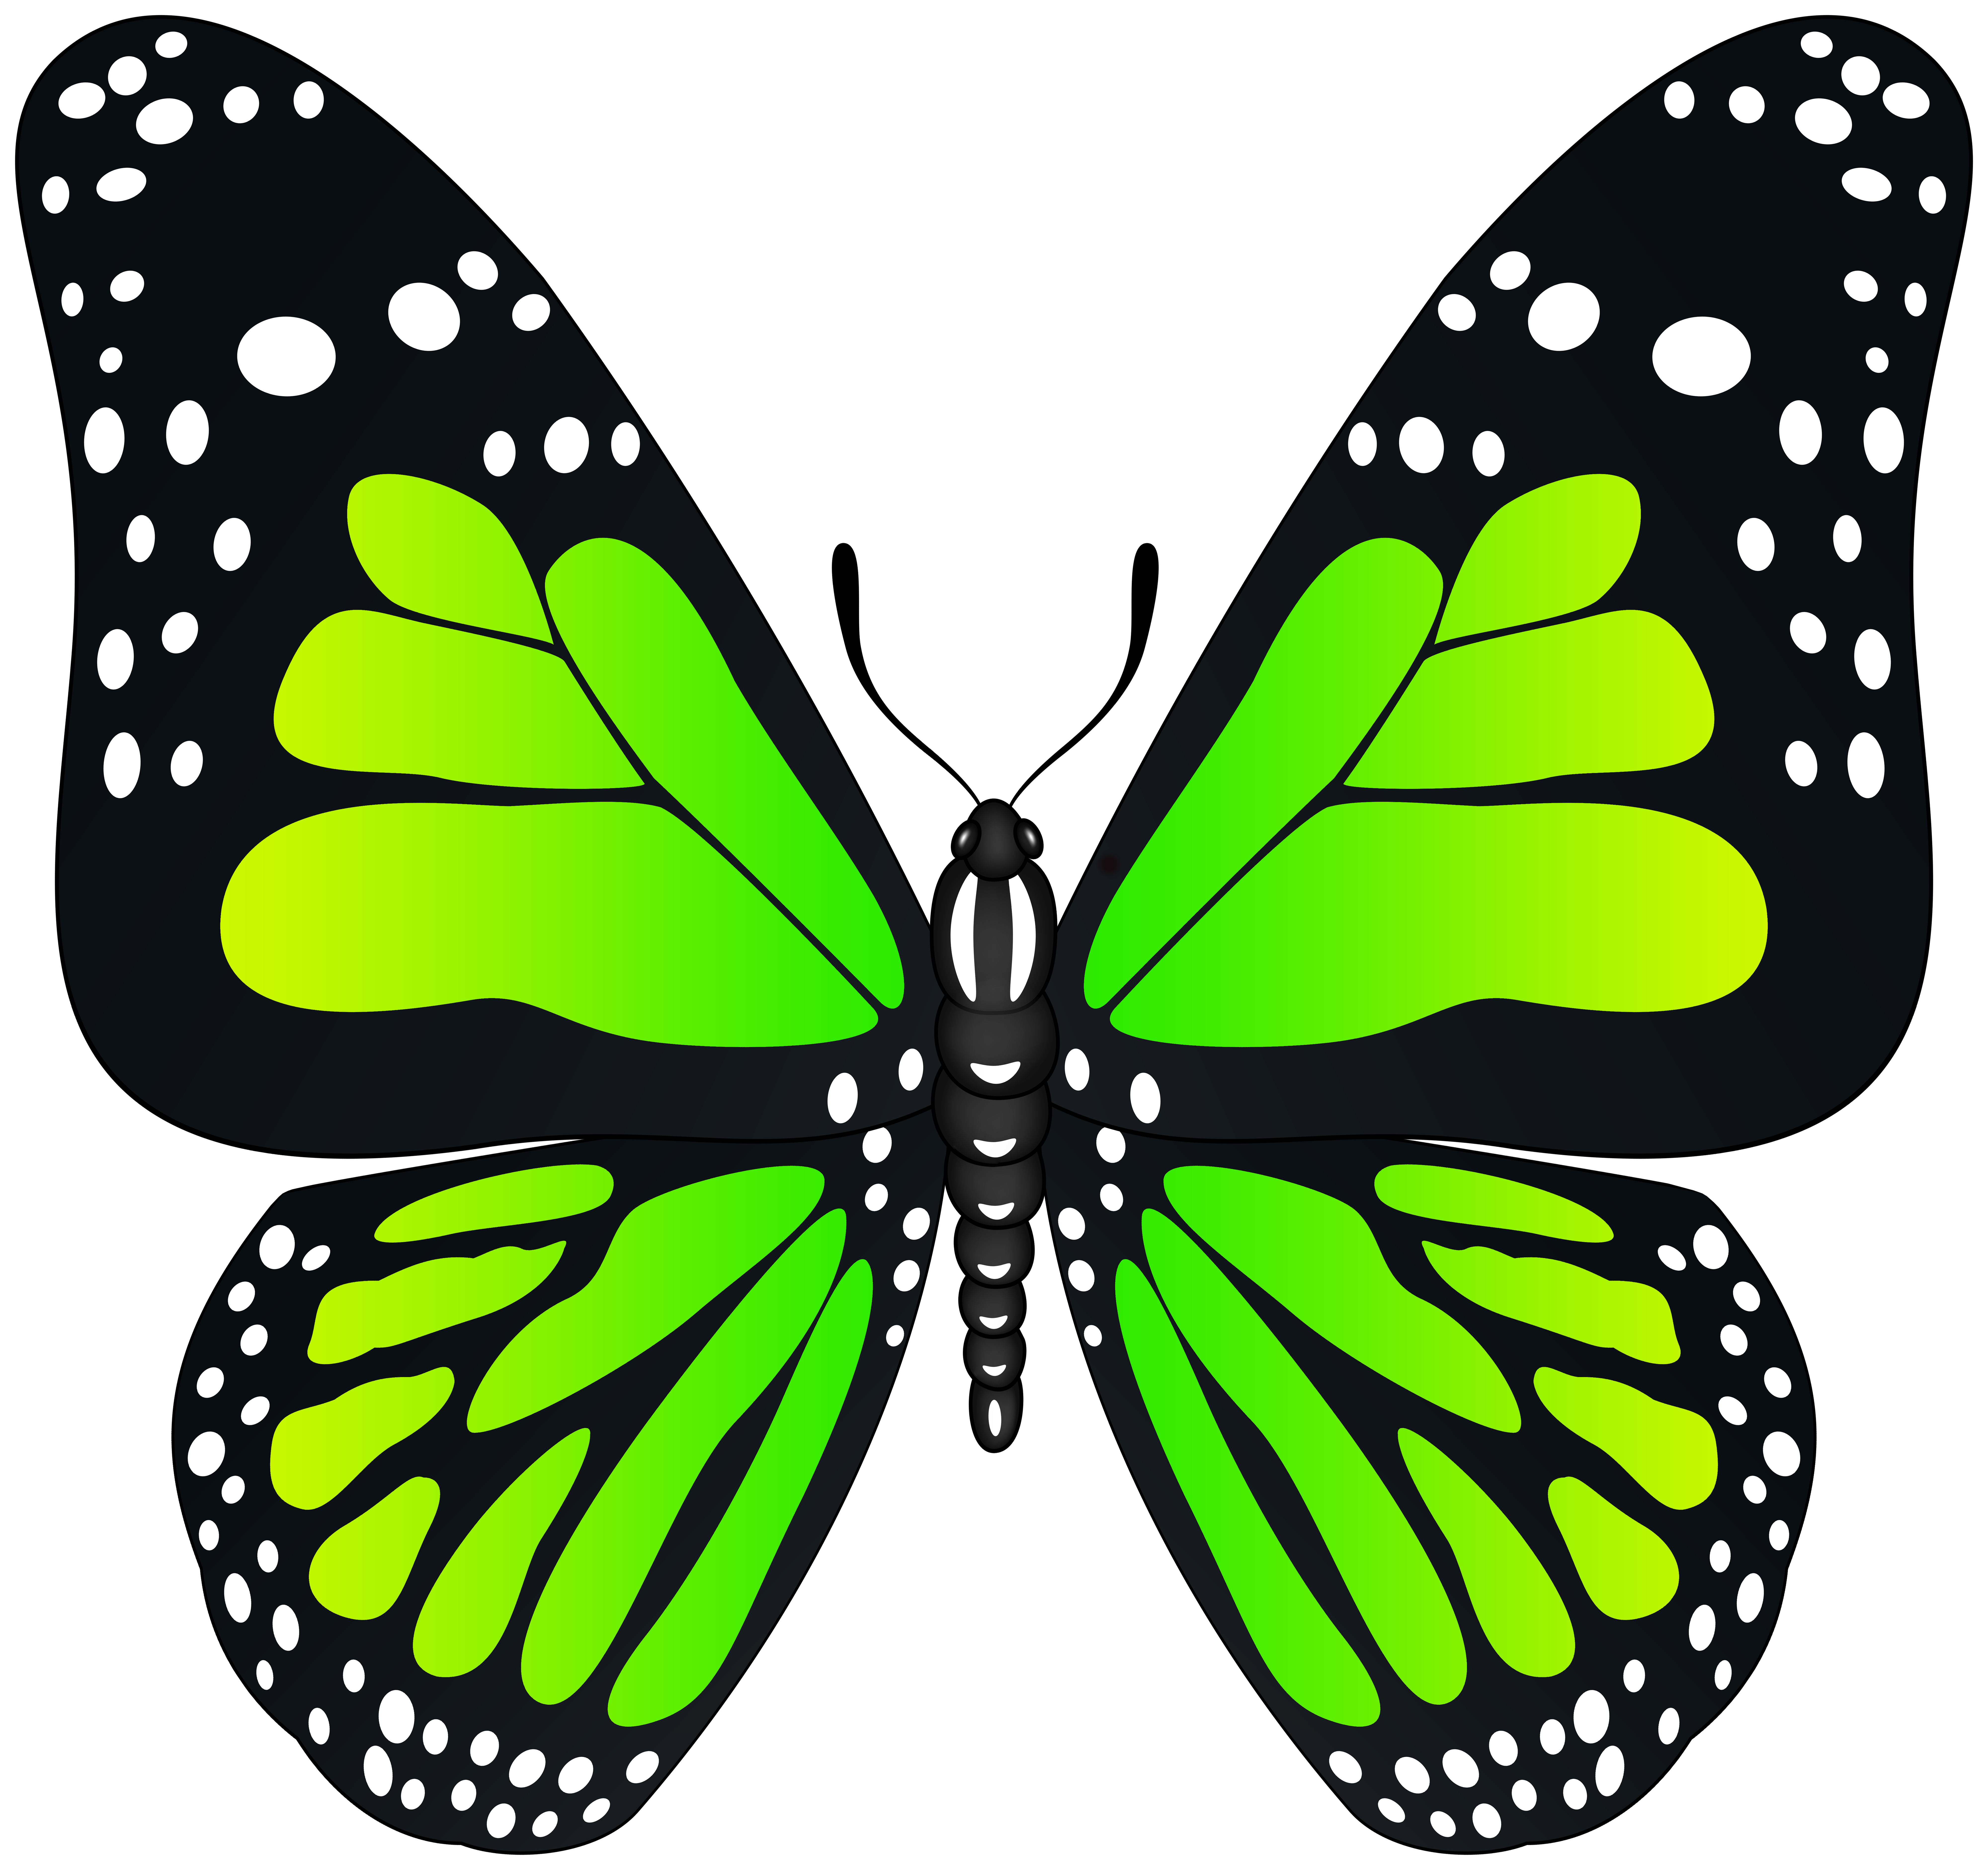 Green Butterfly Transparent PNG Image